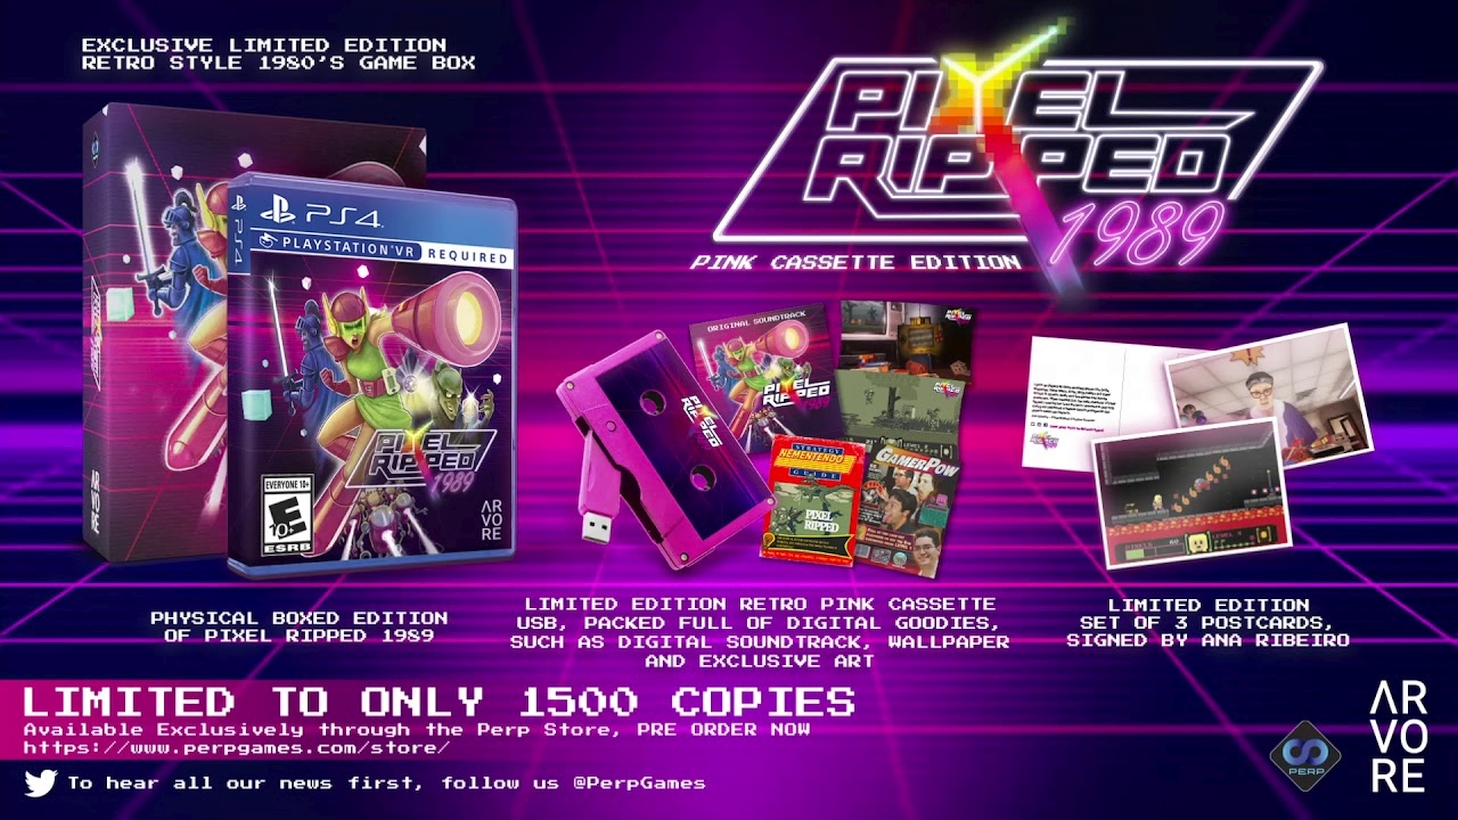 Pixel Ripped 1989 Gets Limited Edition Pink Cassette Physical PlayStation VR Edition On August 25